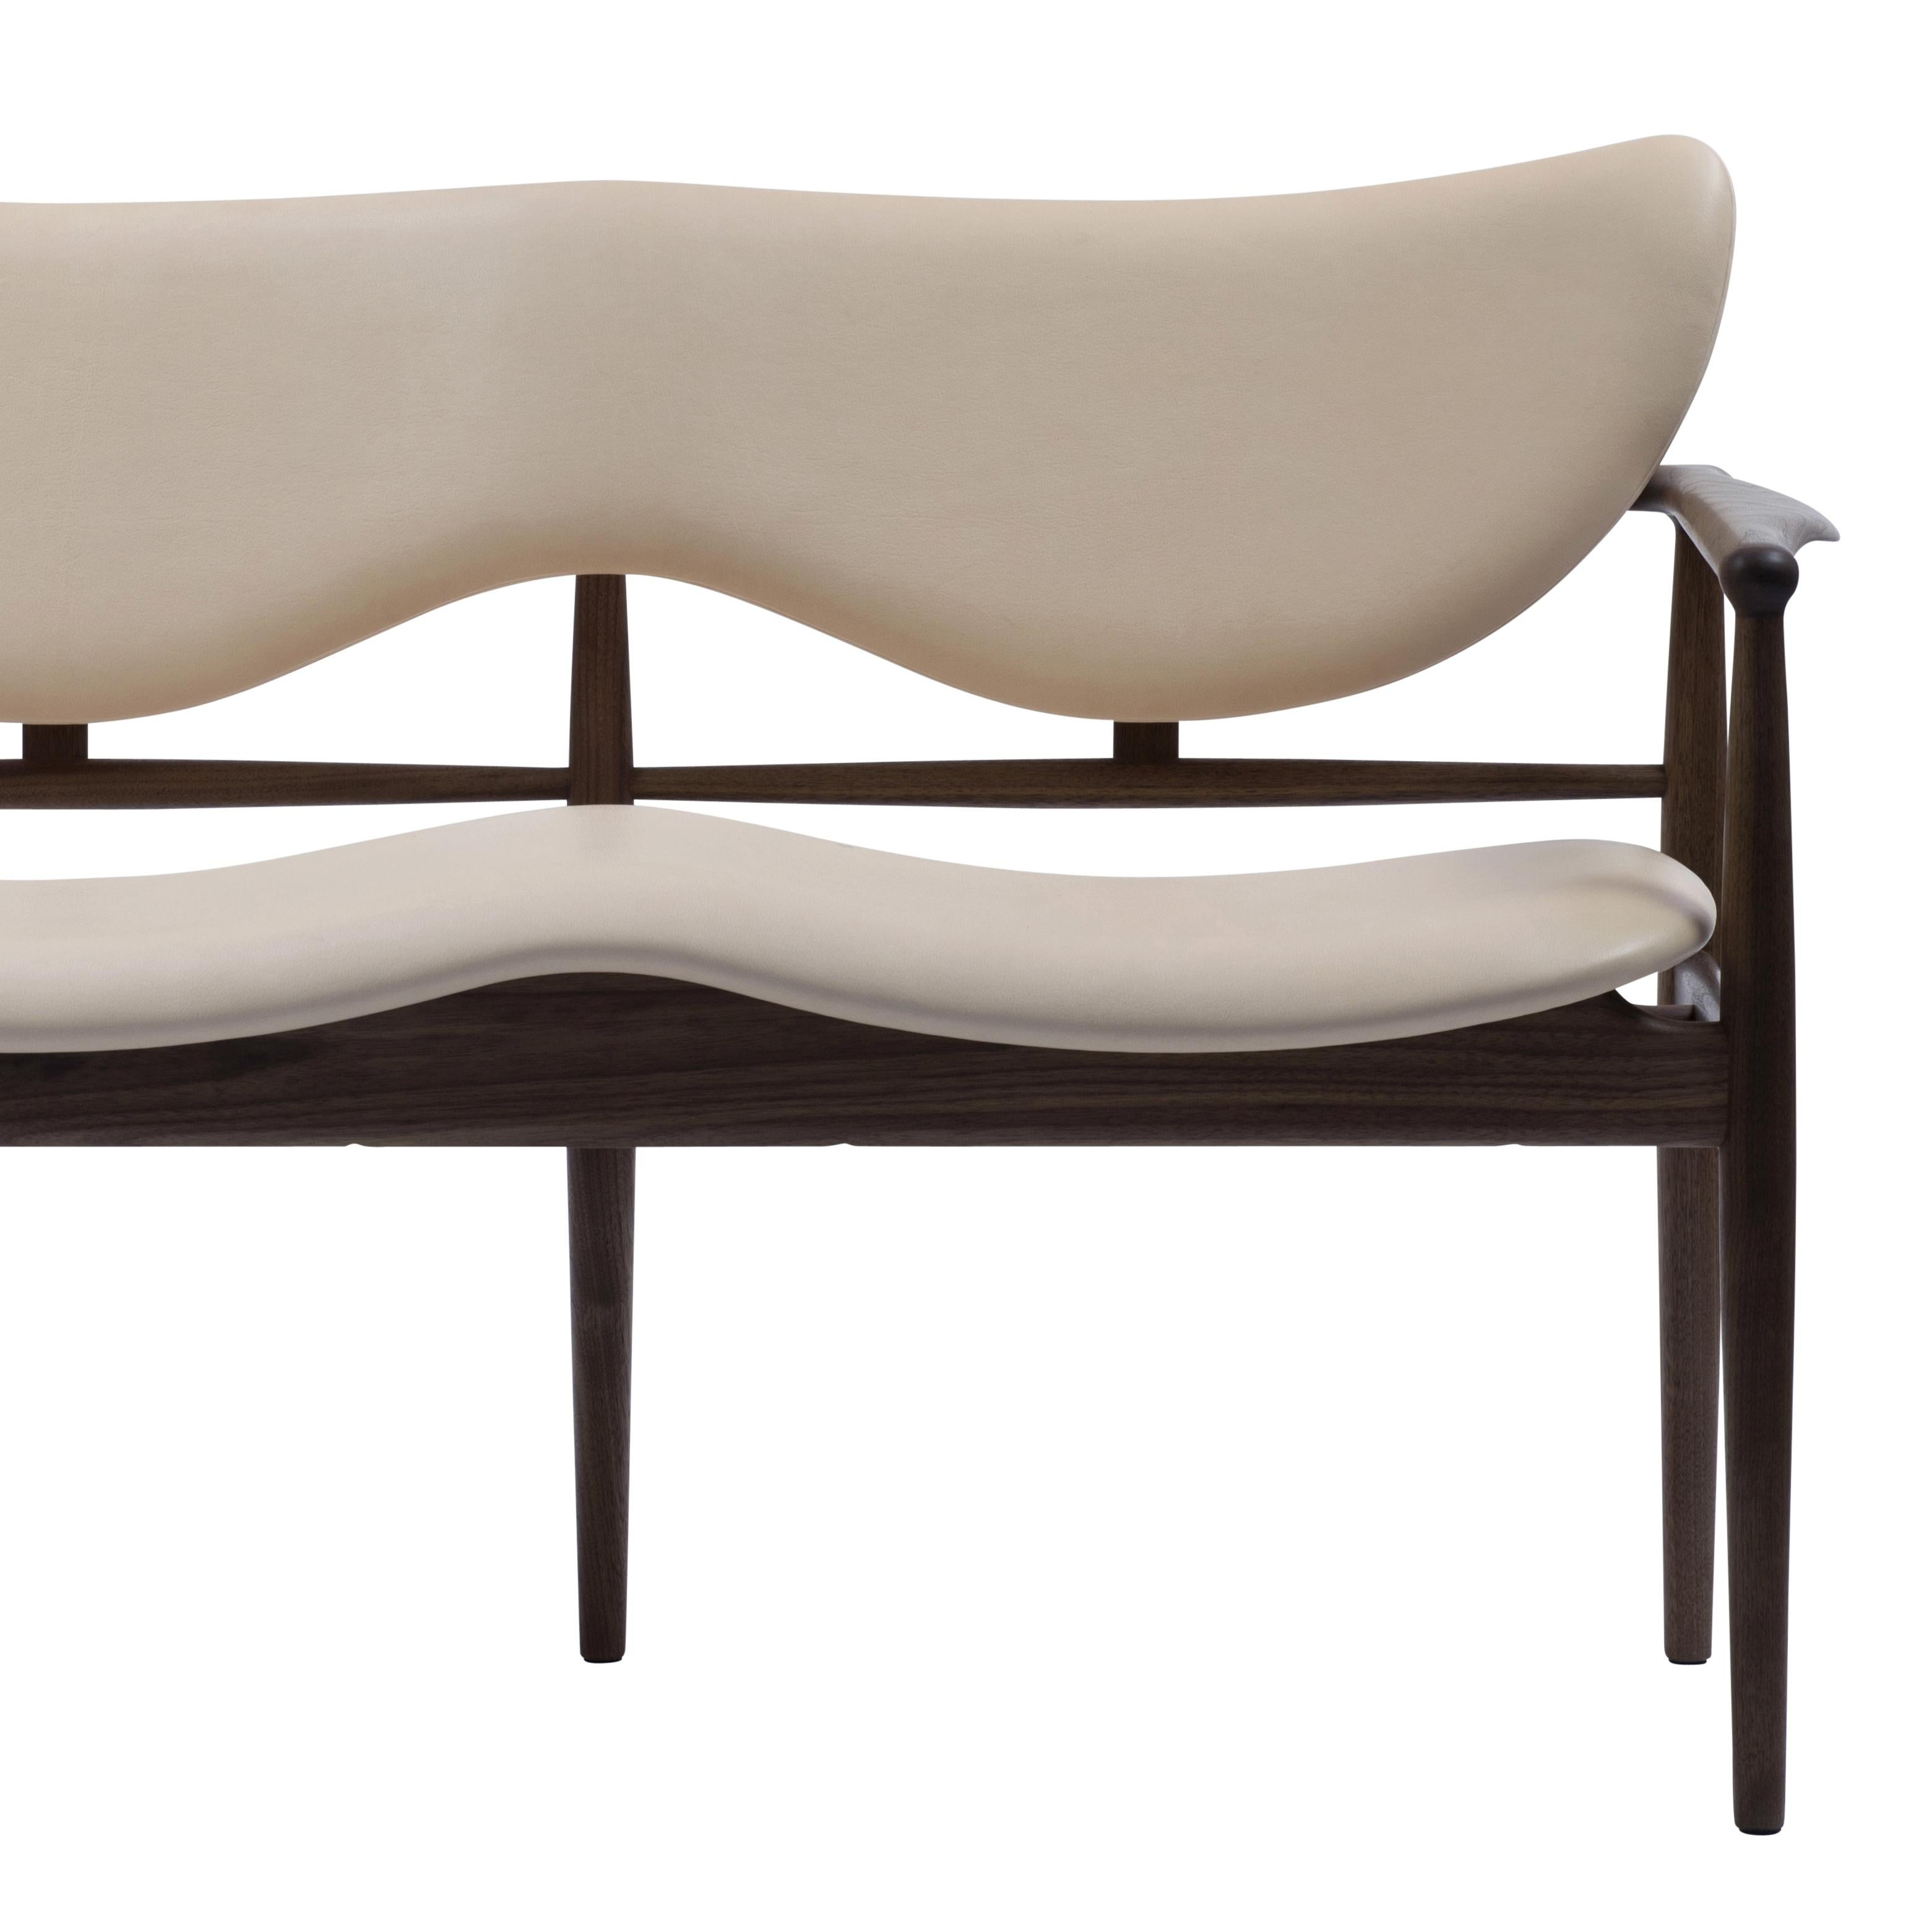 Peachy Finn Juhl 48 Sofa Bench 1948 Walnut Leather Vegetal Nature Pabps2019 Chair Design Images Pabps2019Com